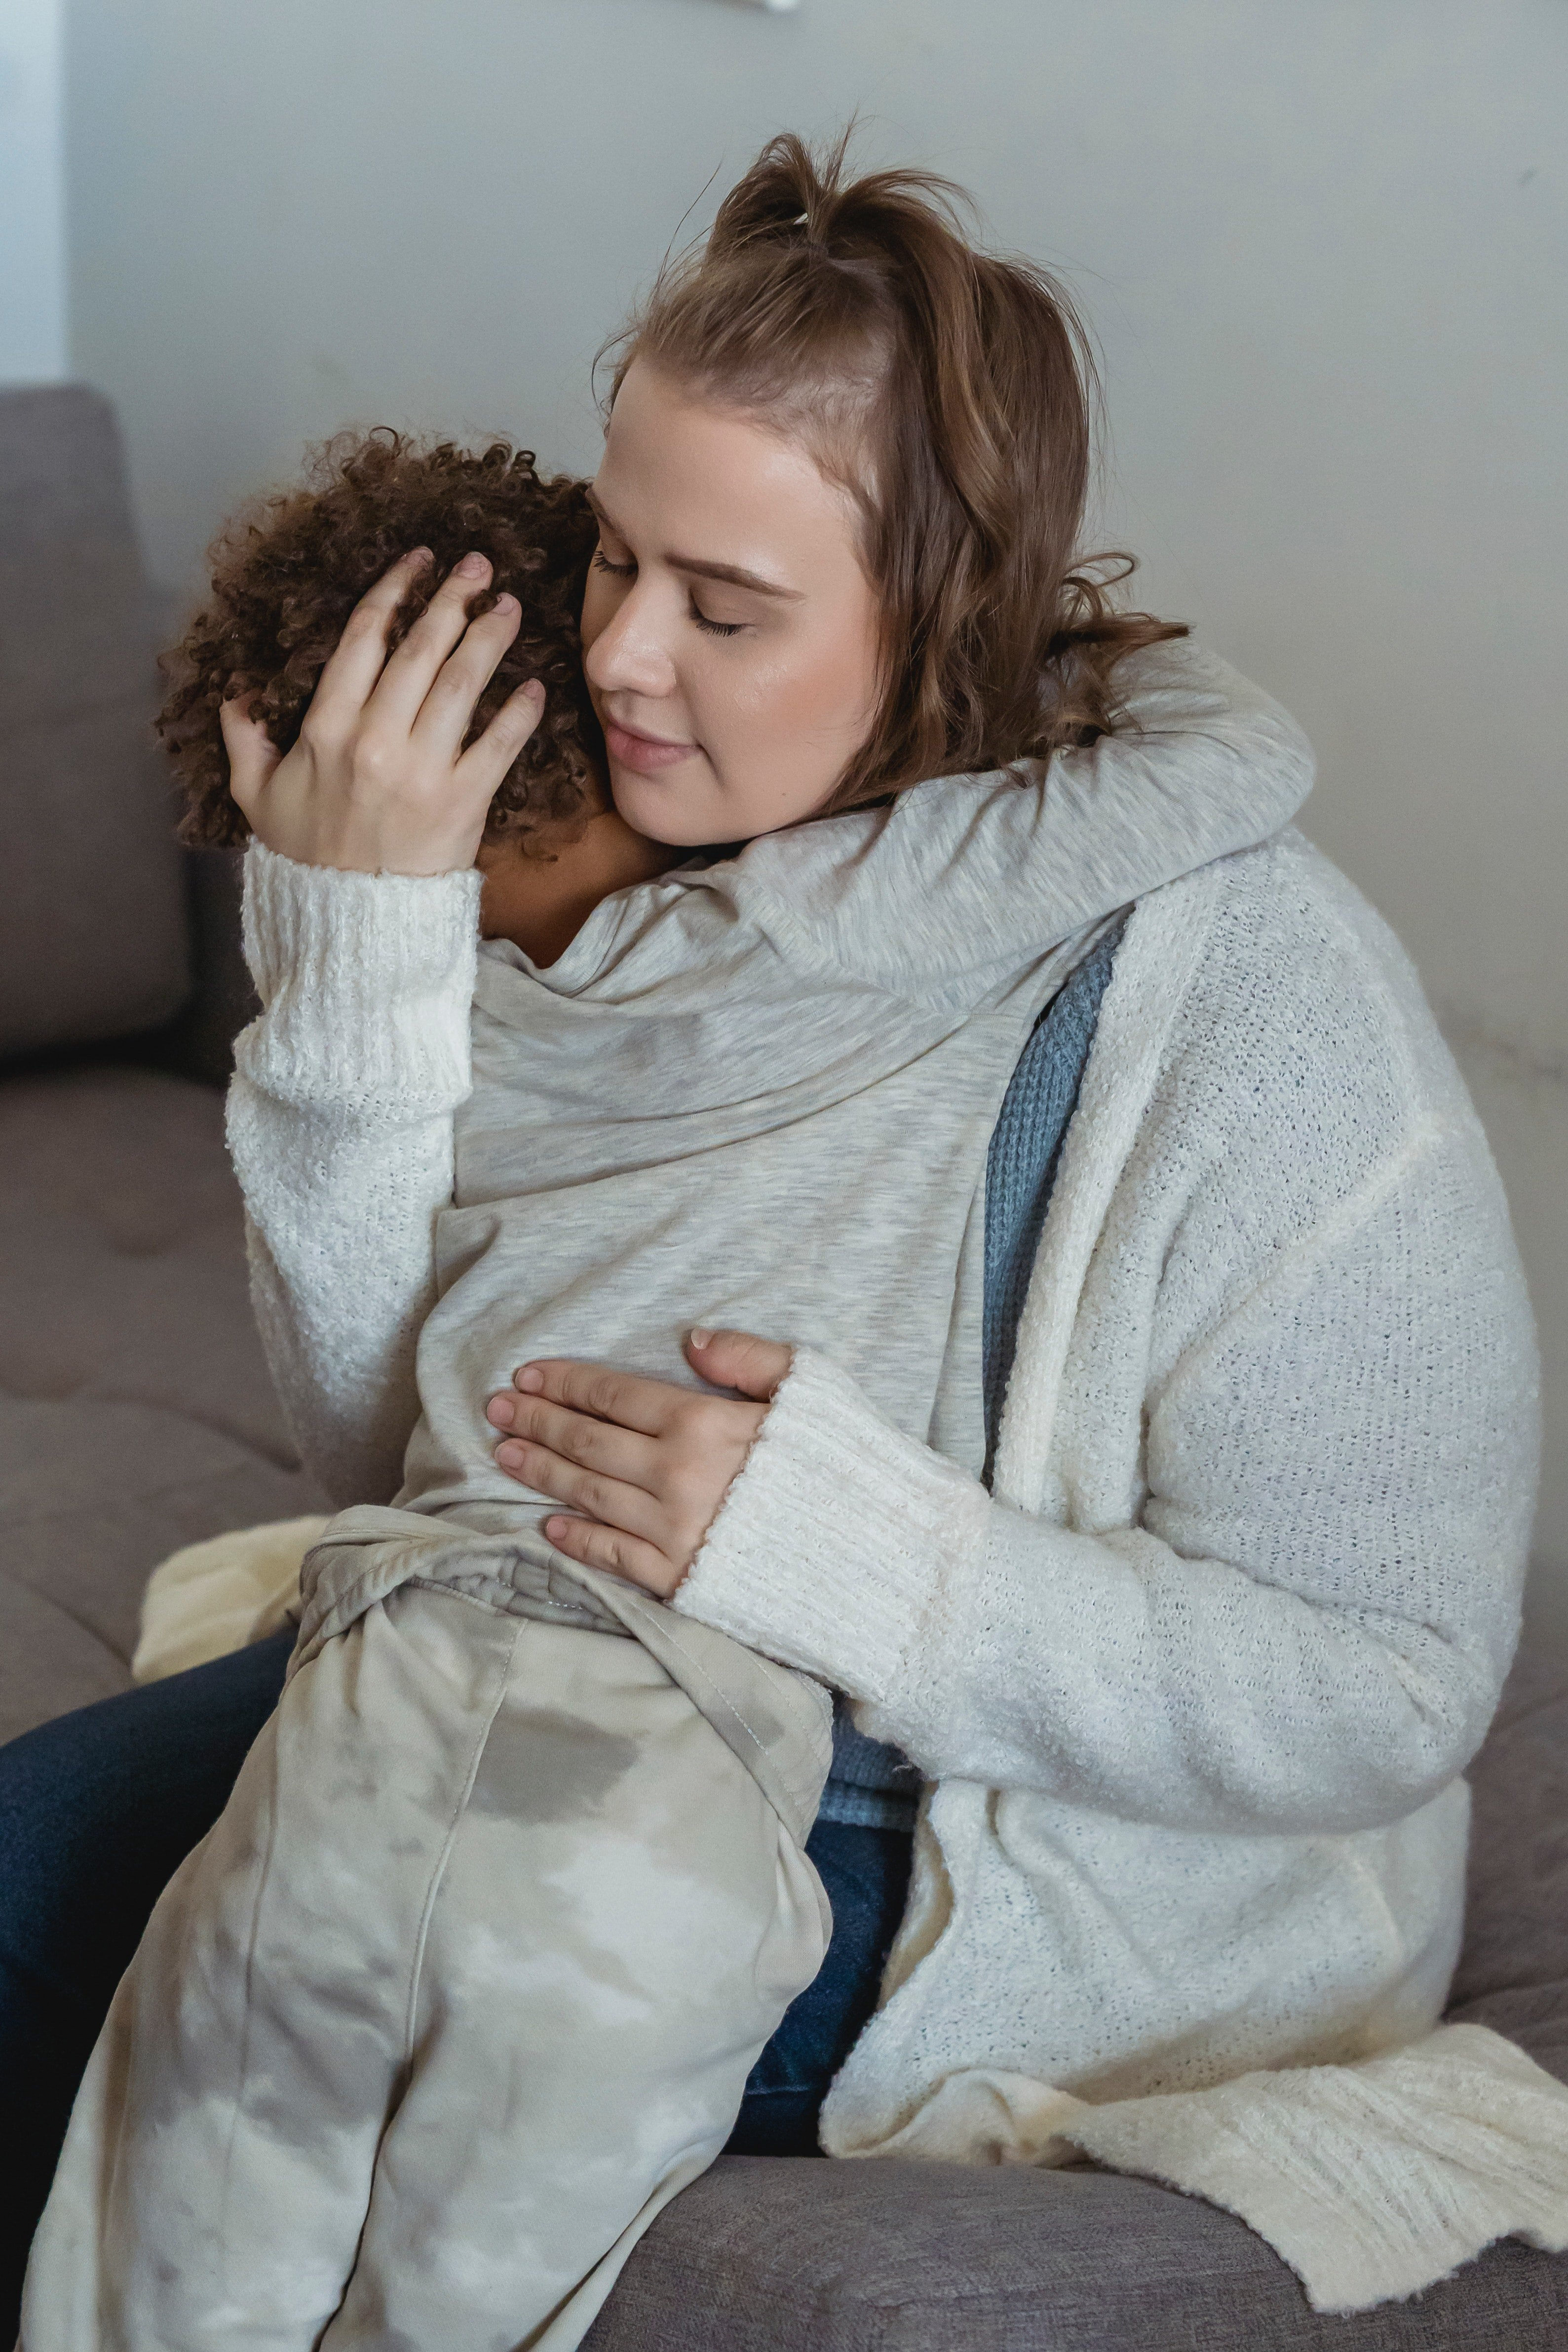 Mother comforts her son by hugging him   Photo: Pexels